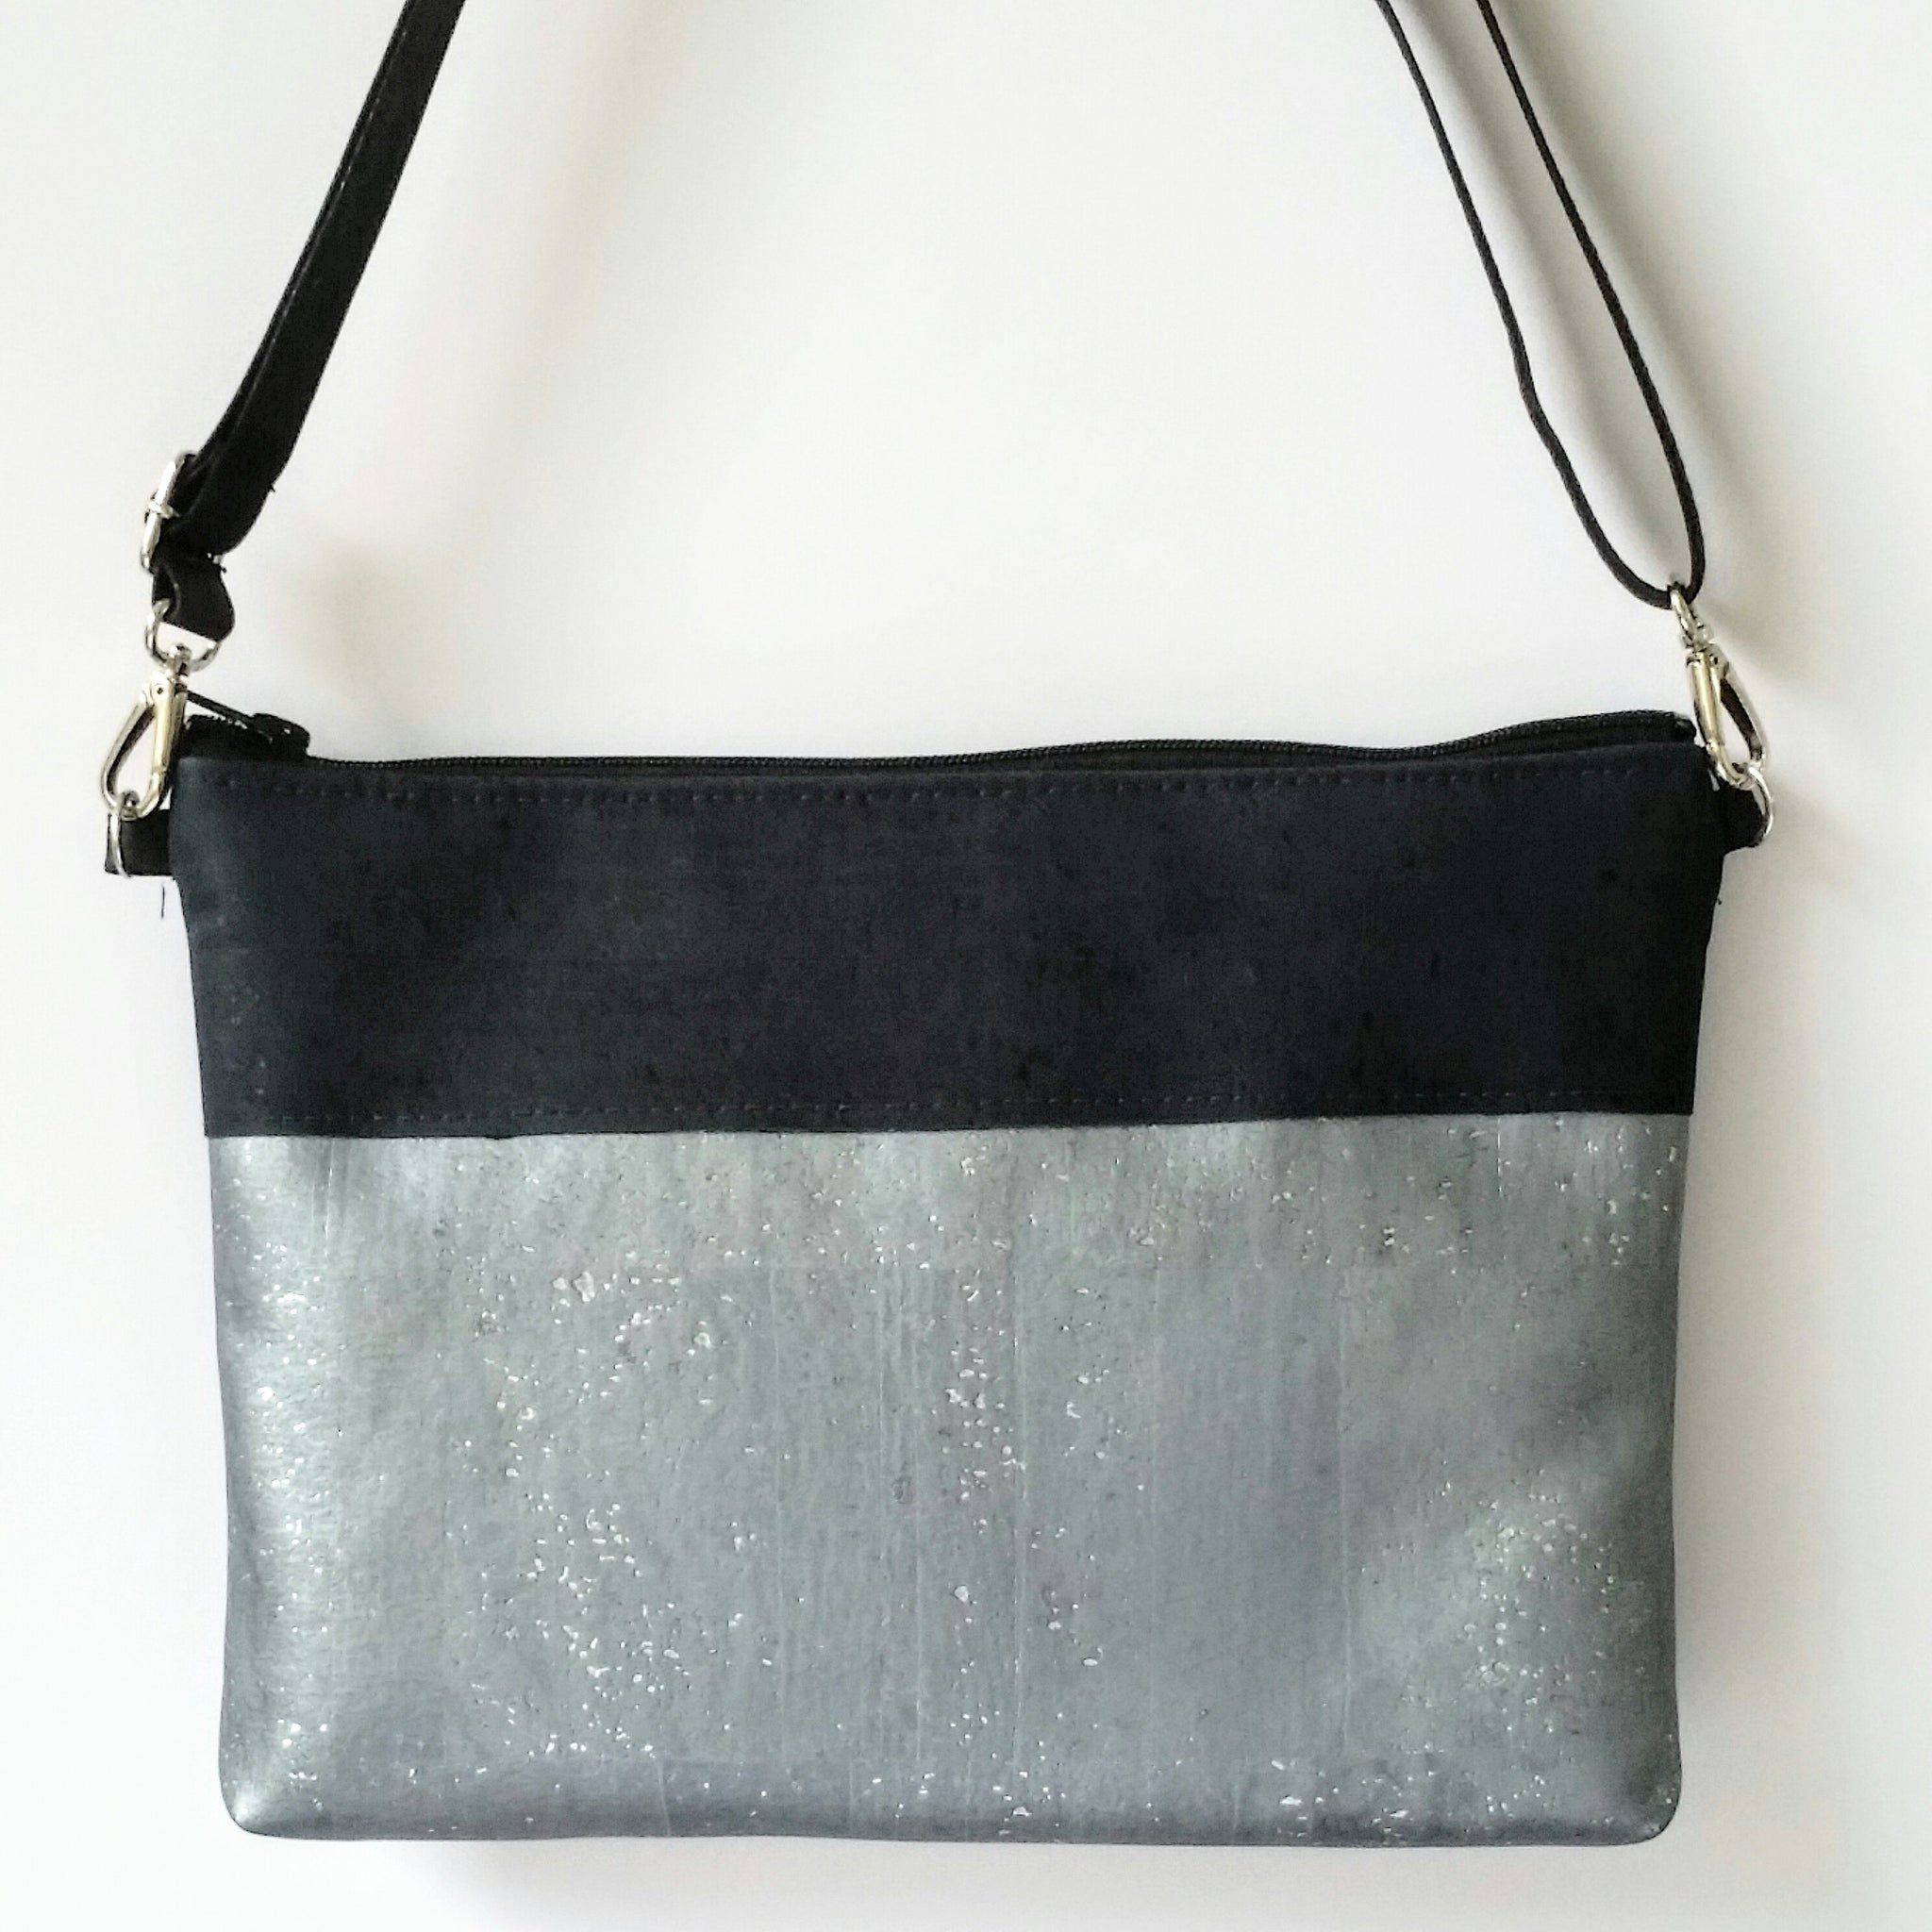 Cork Crossbody Bag/Clutch - Mercury/Navy